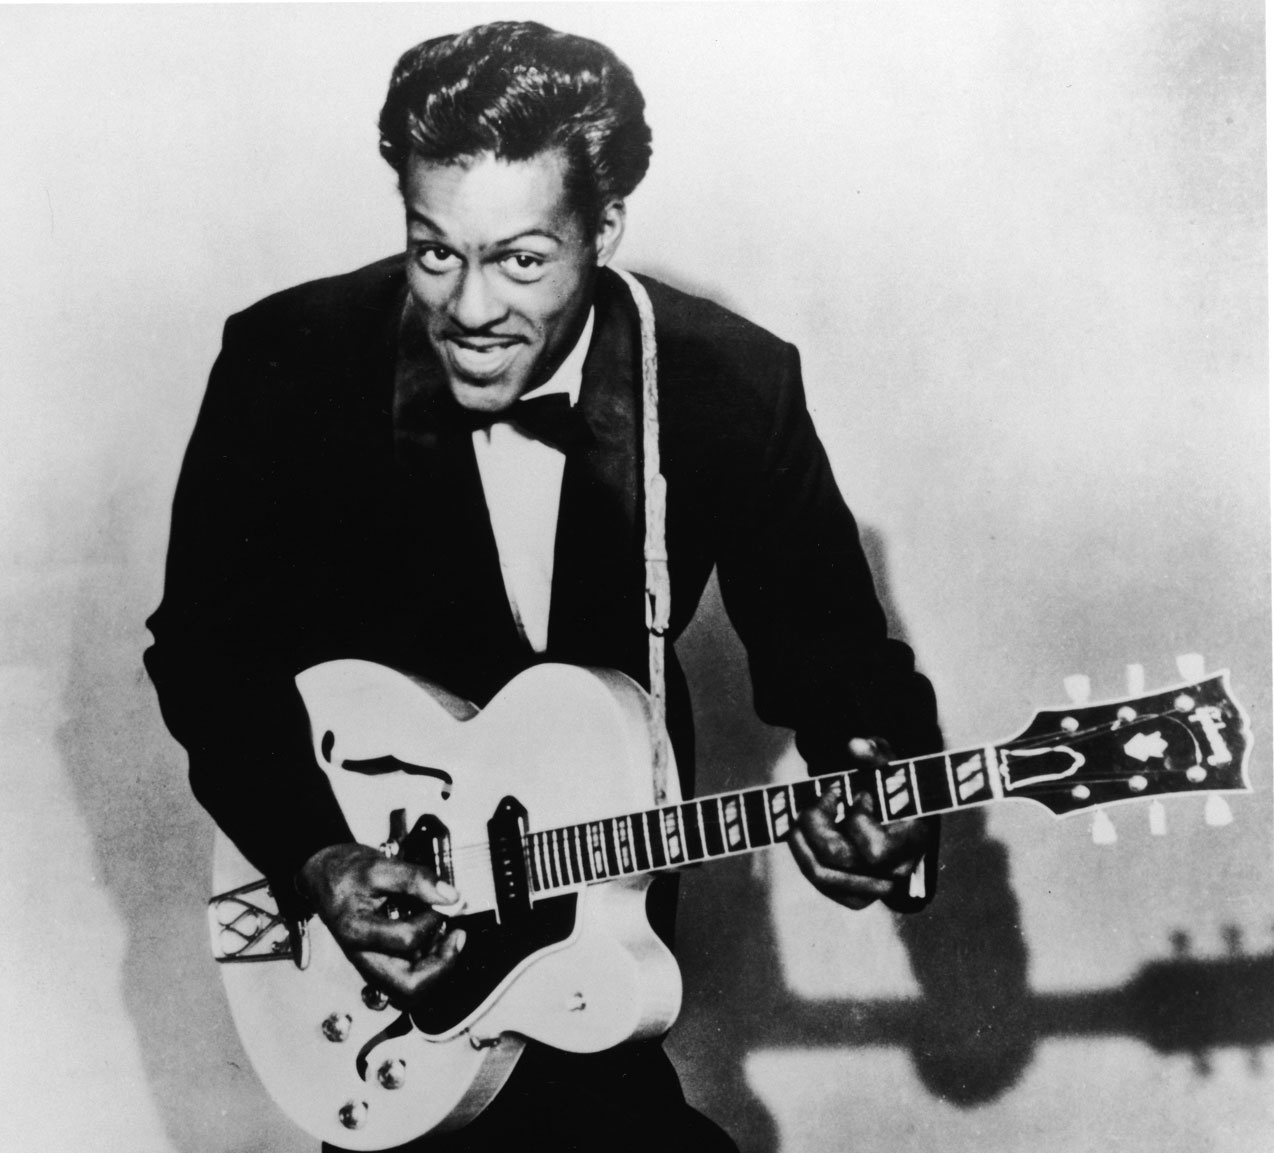 Obituary Rock n roll icon Chuck Berry, 1926 - 2017